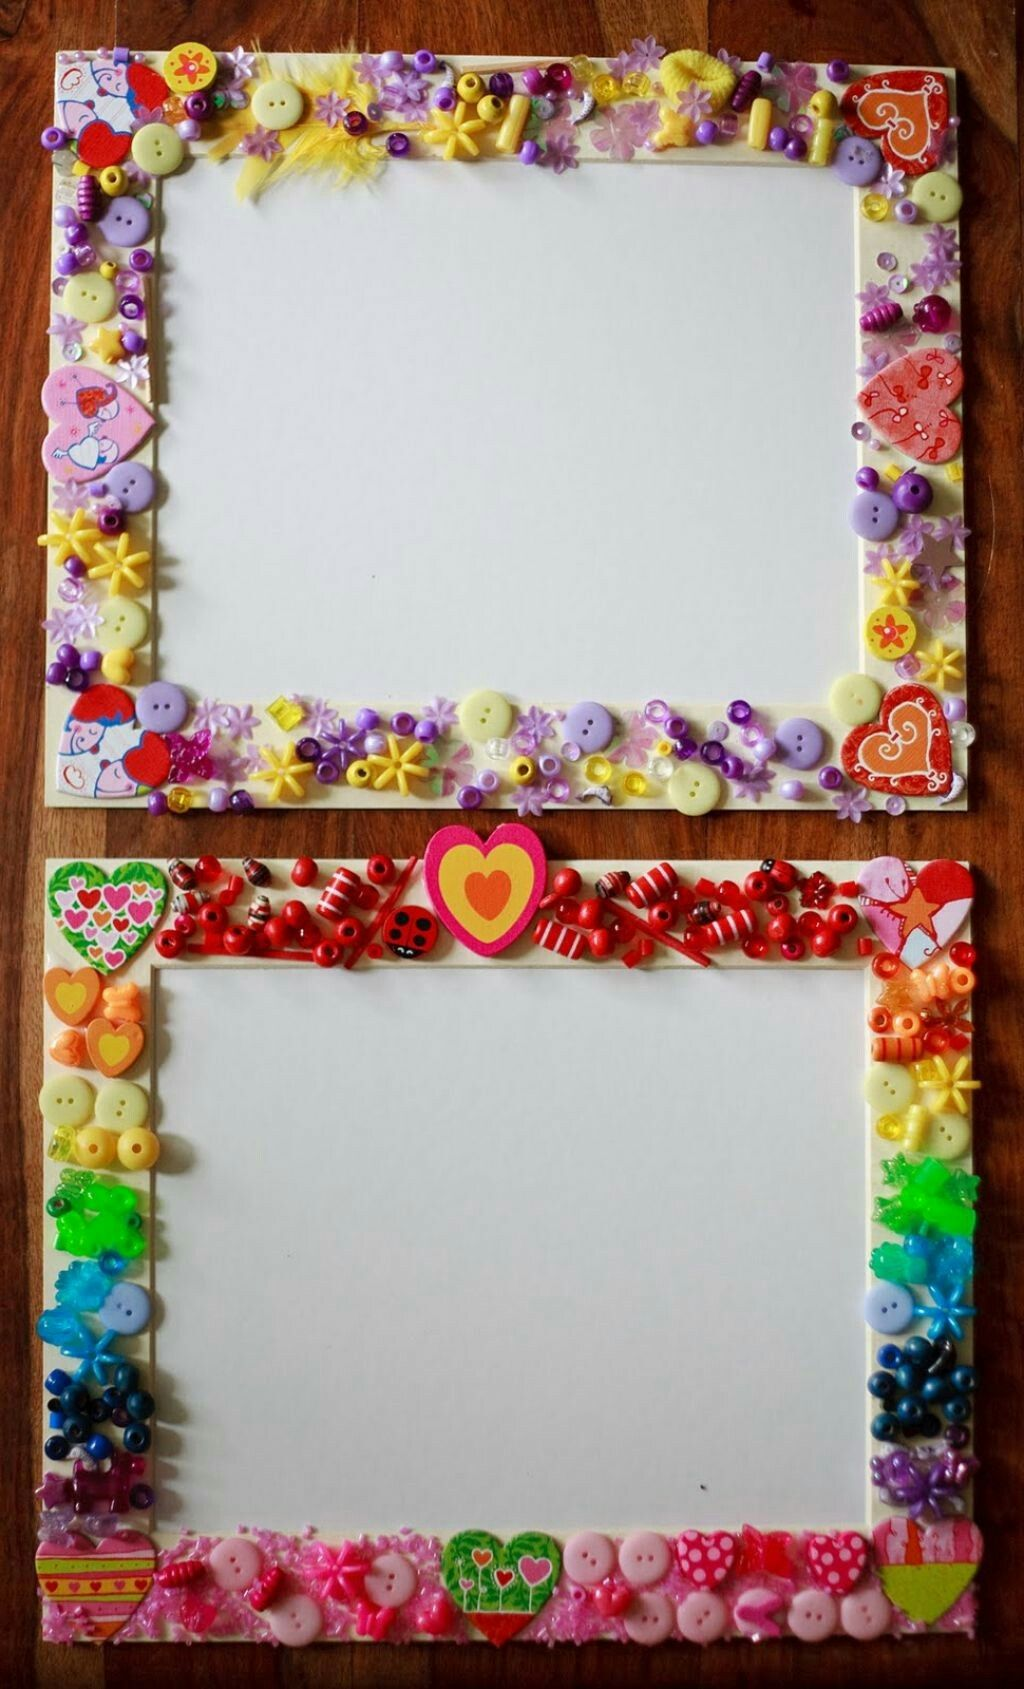 Pin by Zeisha on DIY IDEAS | Picture frame designs ...